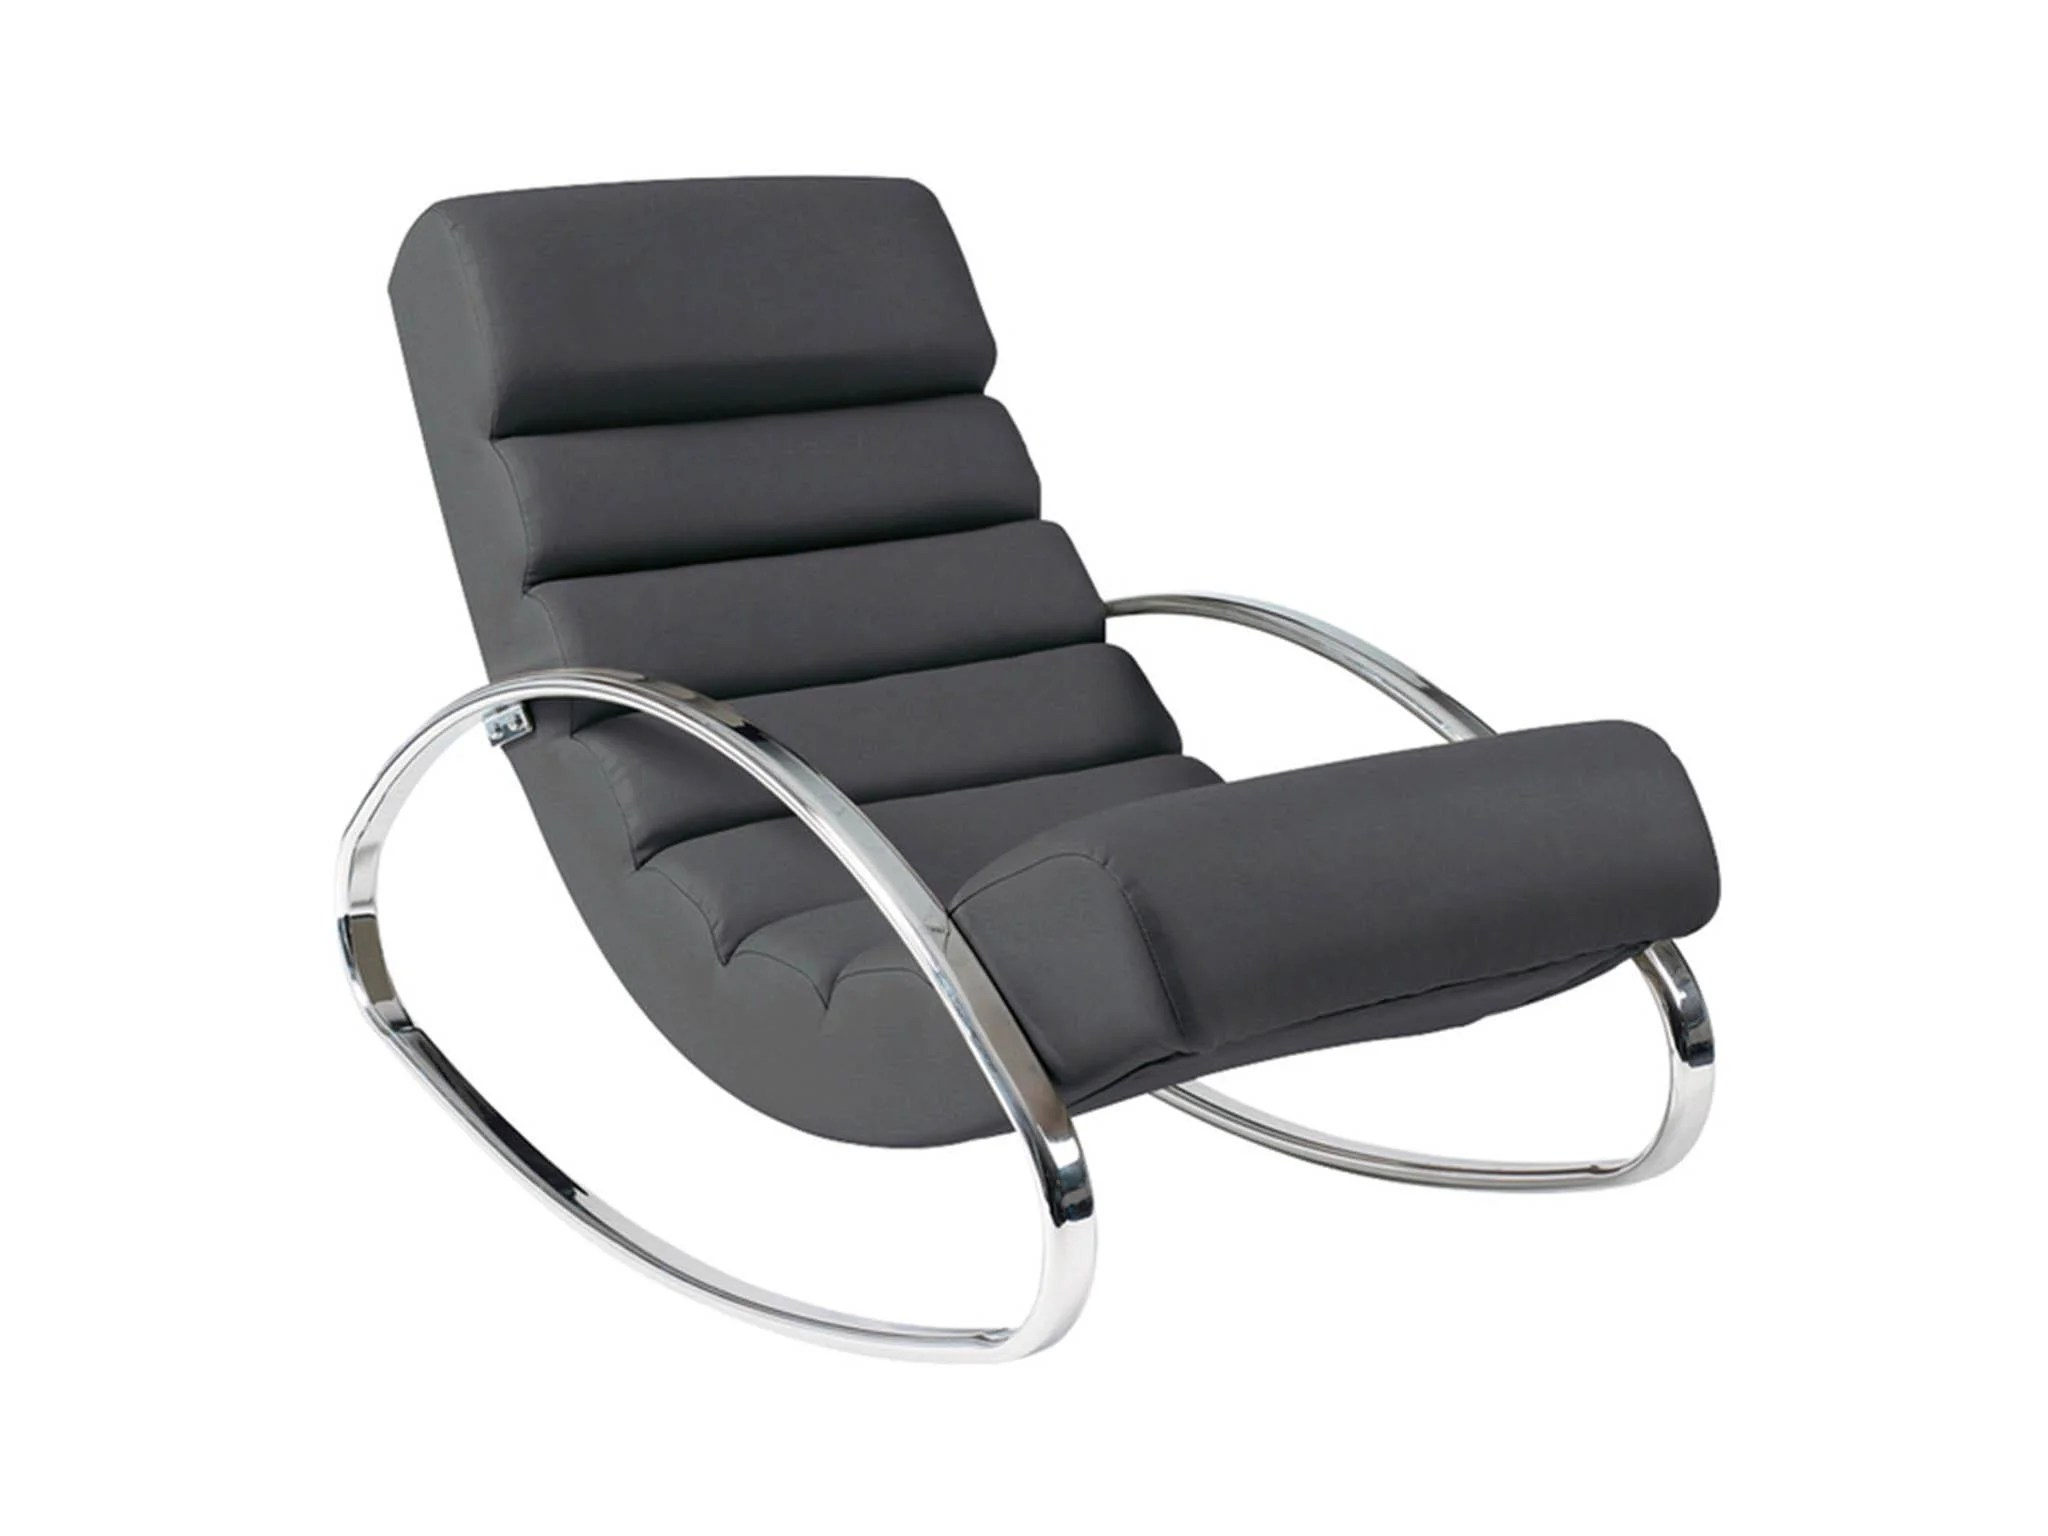 Eames Chair Vitra Preisvergleich 10 Best Rocking Chairs The Independent